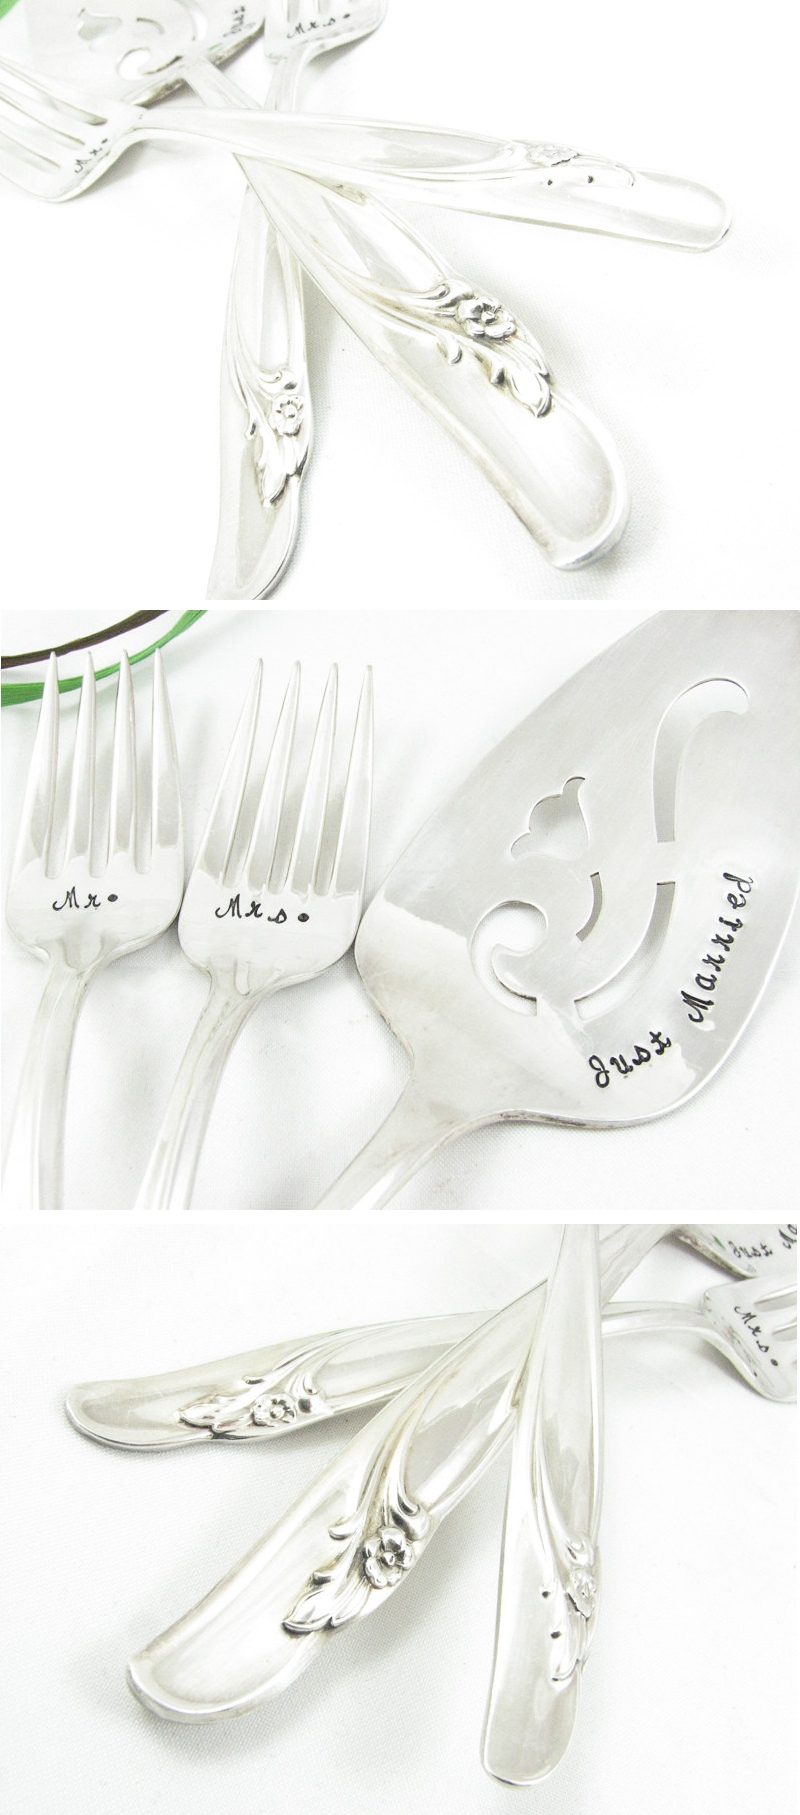 Mr & Mrs Just Married Vintage Silver Wedding Cake Server Set